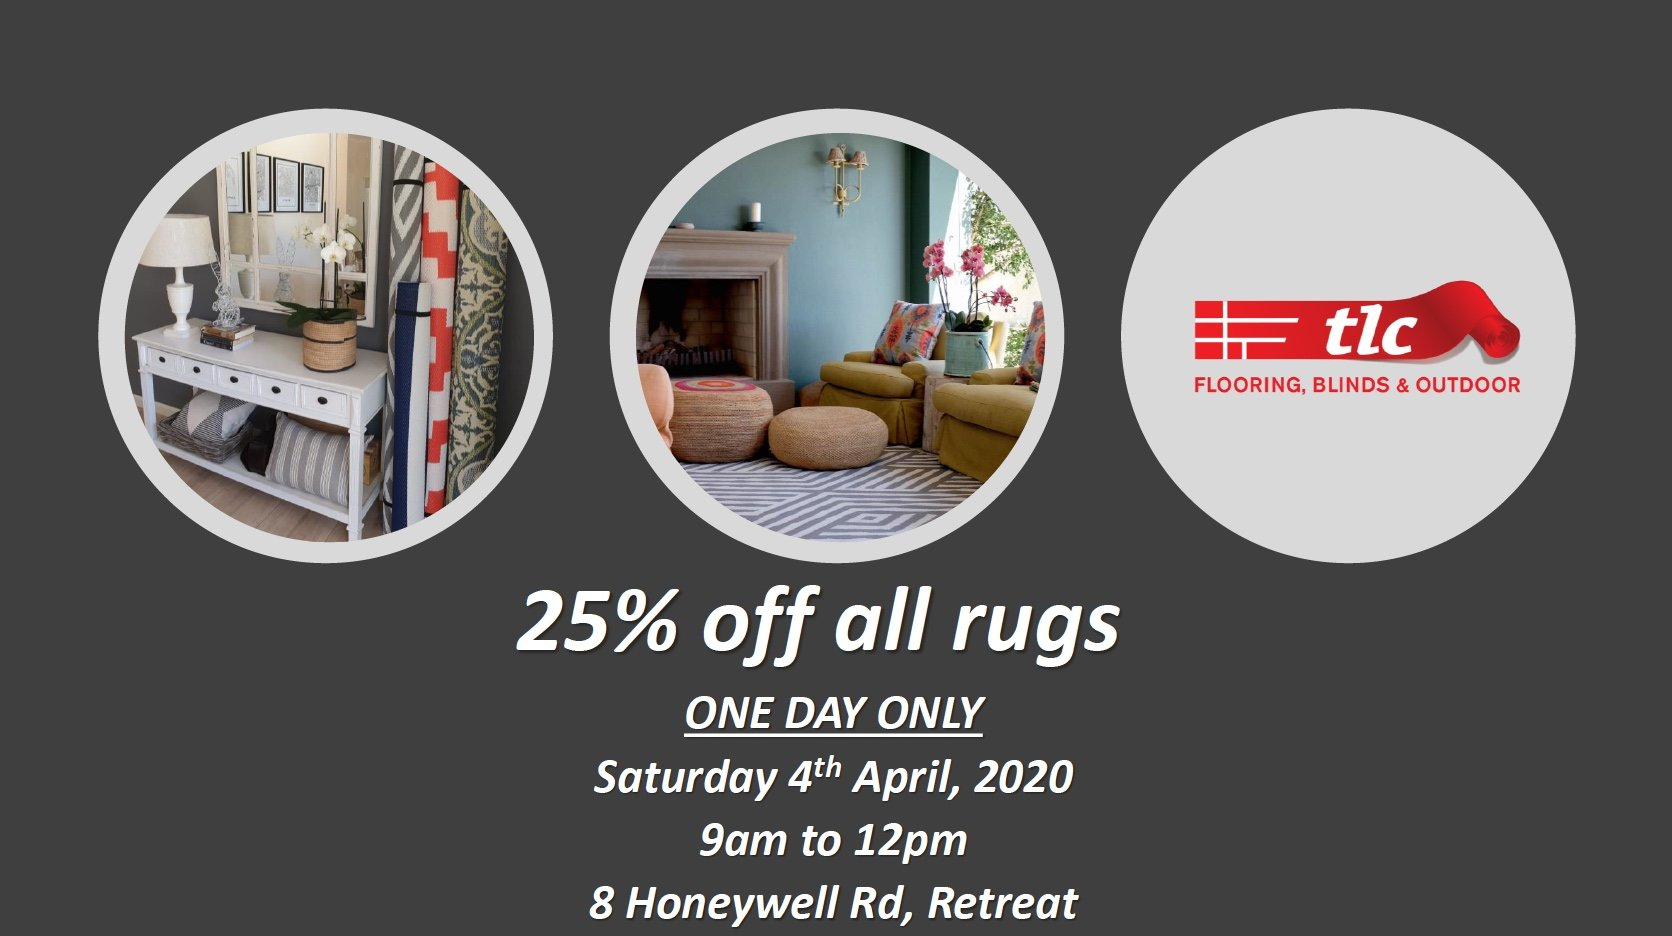 tlc flooring one day sale flash sale rug sale